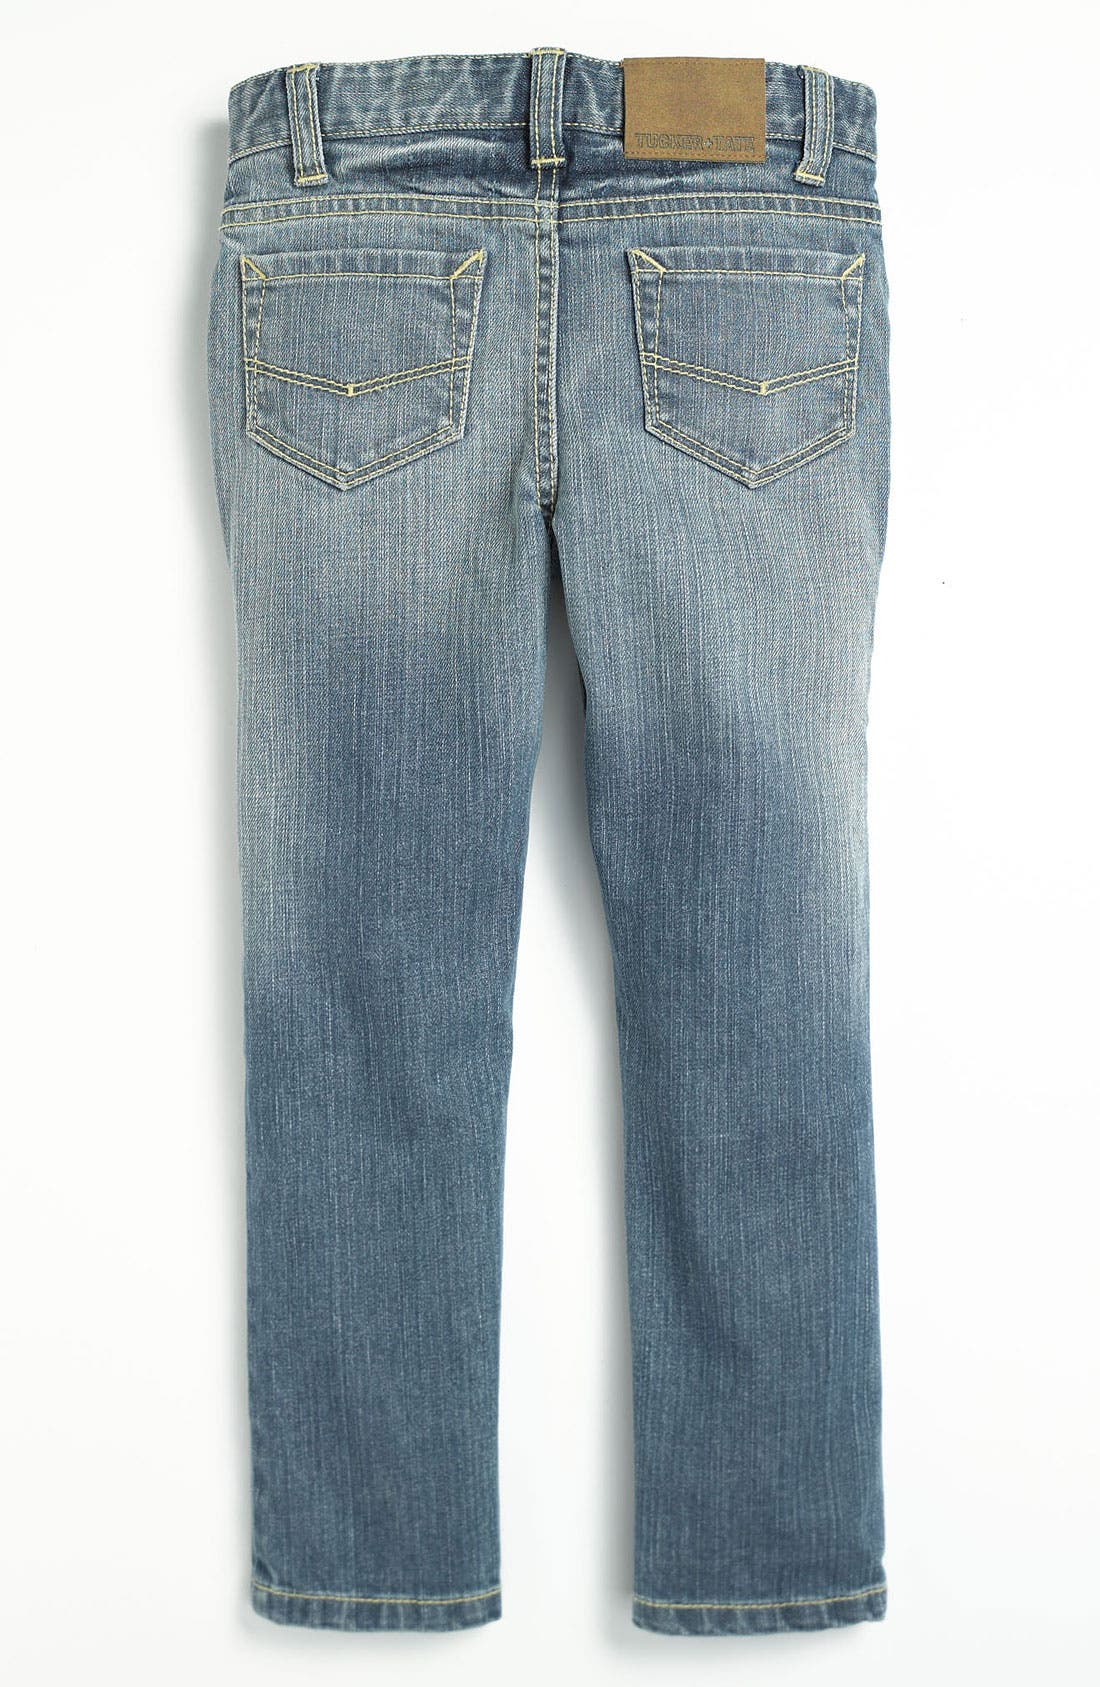 Alternate Image 1 Selected - Tucker + Tate Skinny Jeans (Little Girls)